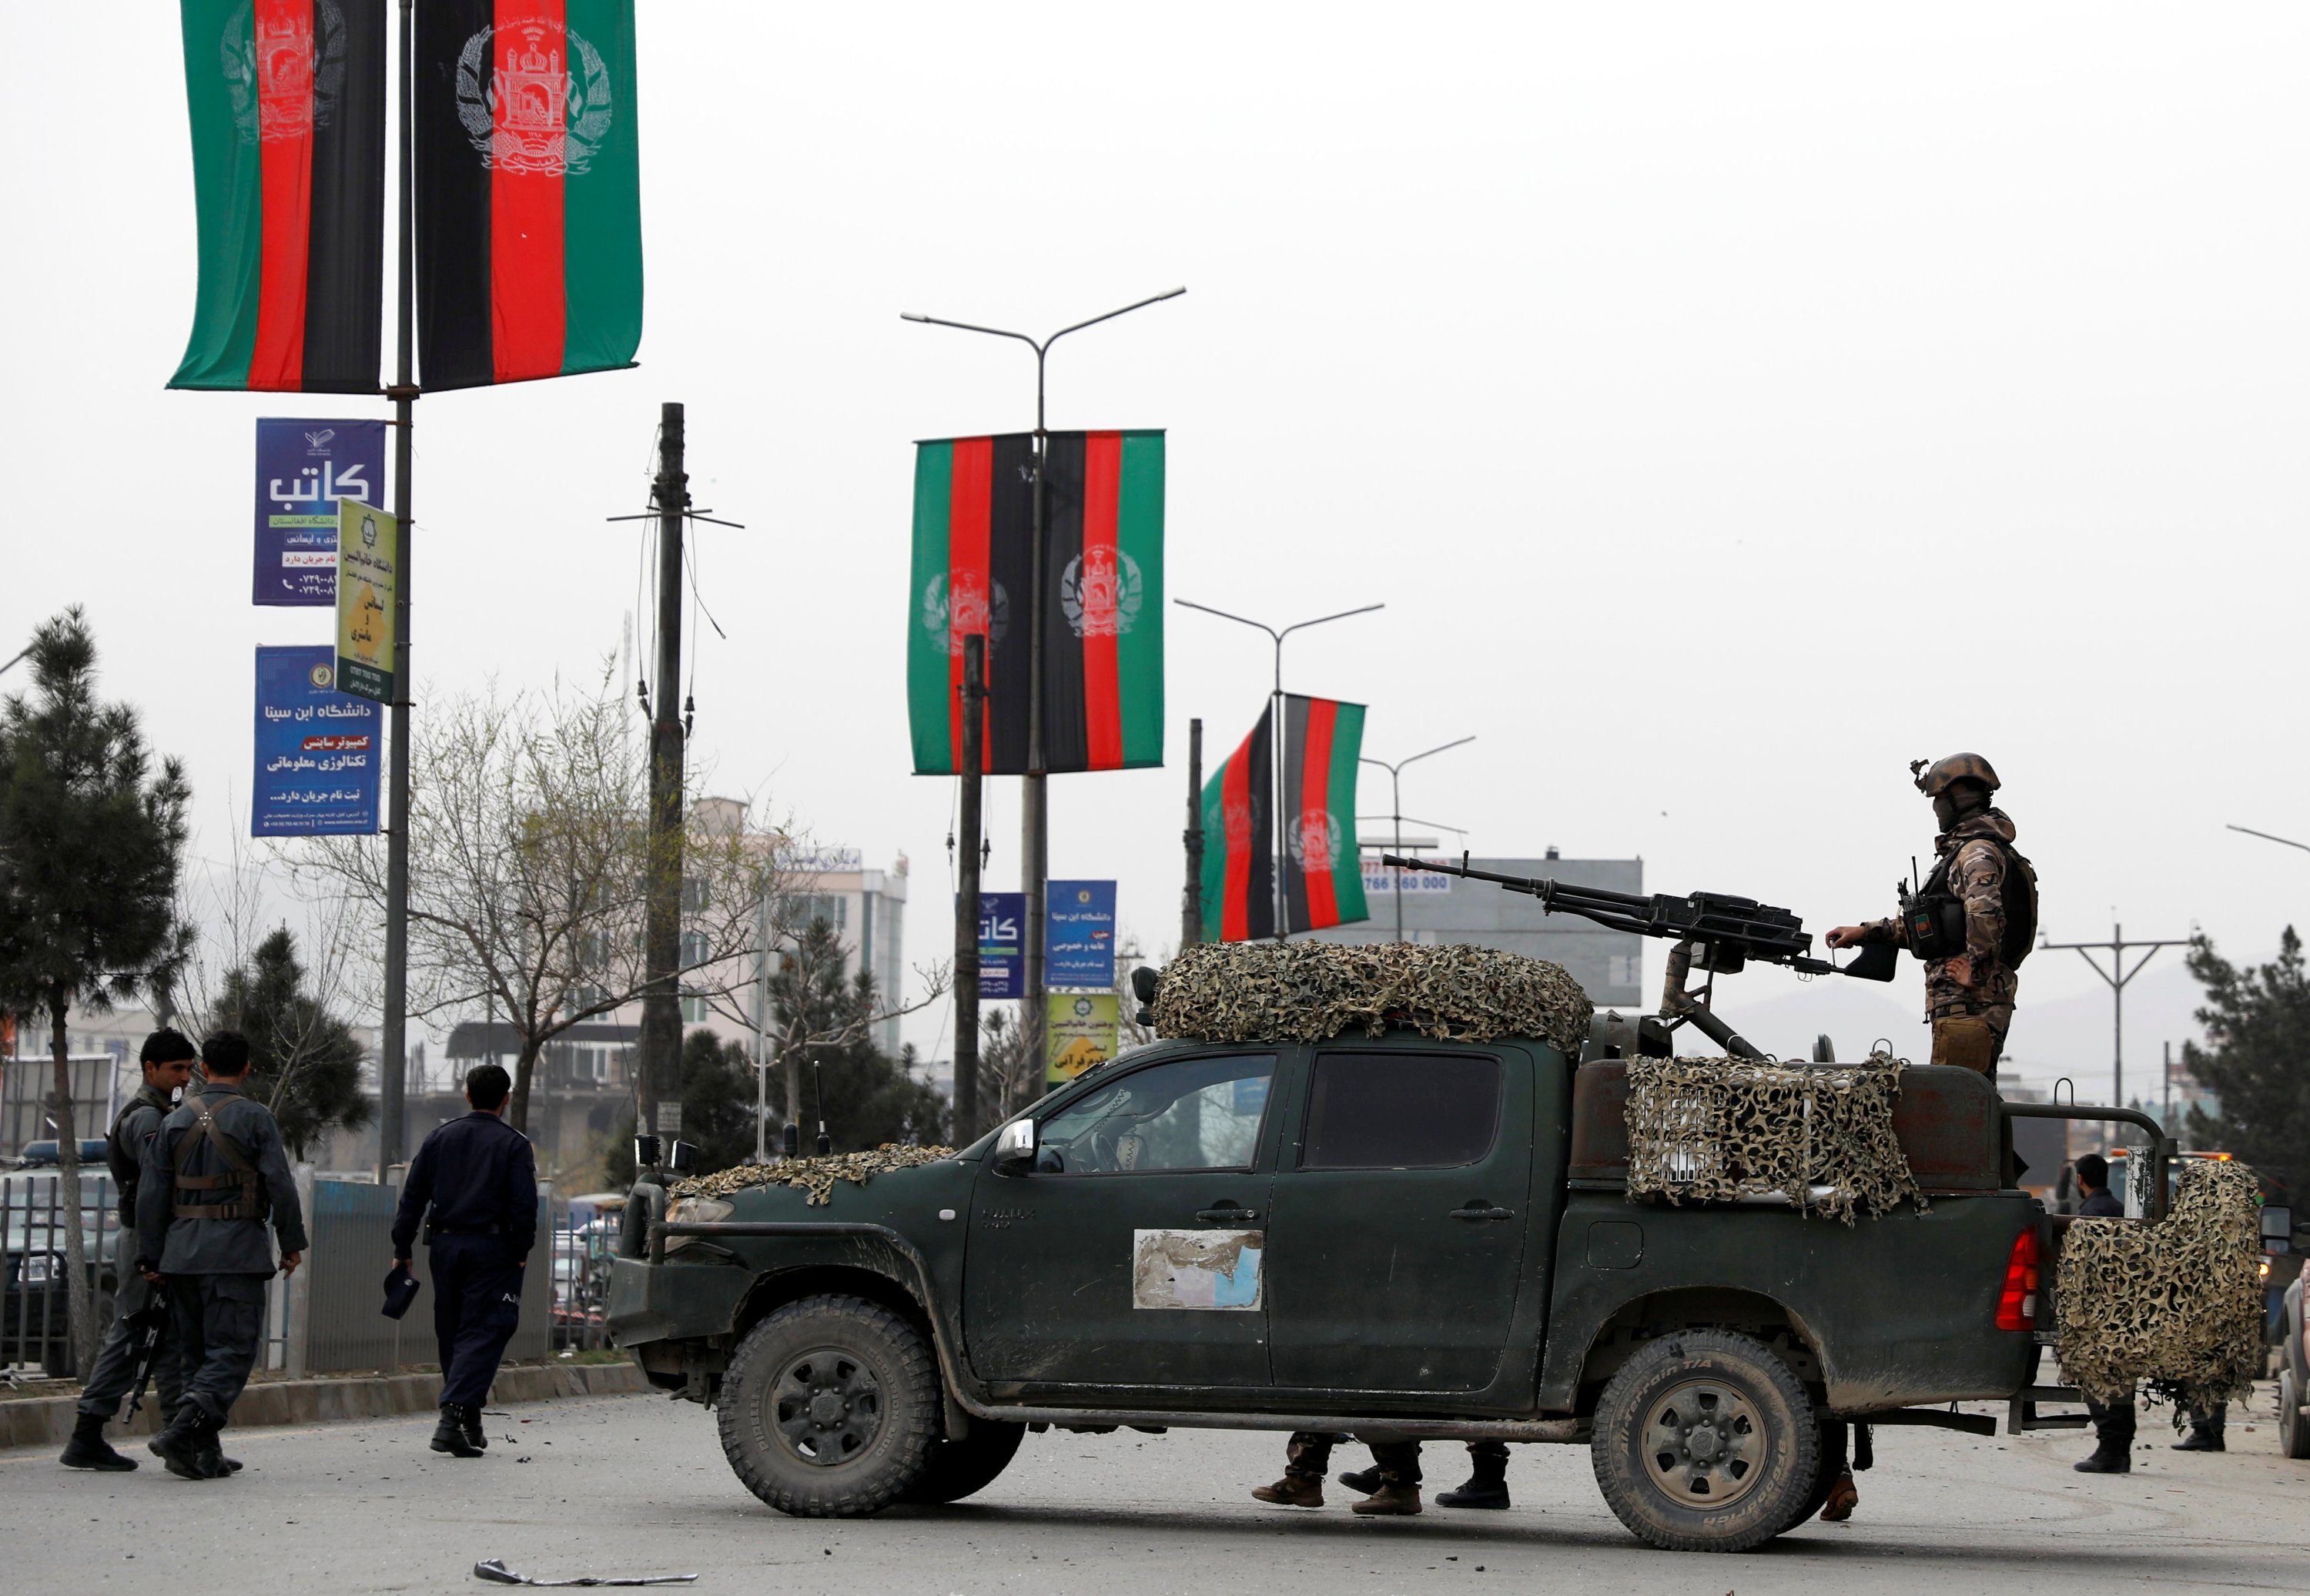 Afghan security forces inspect the site of a blast in Kabul, Afghanistan March 15, 2021. (REUTERS Photo)